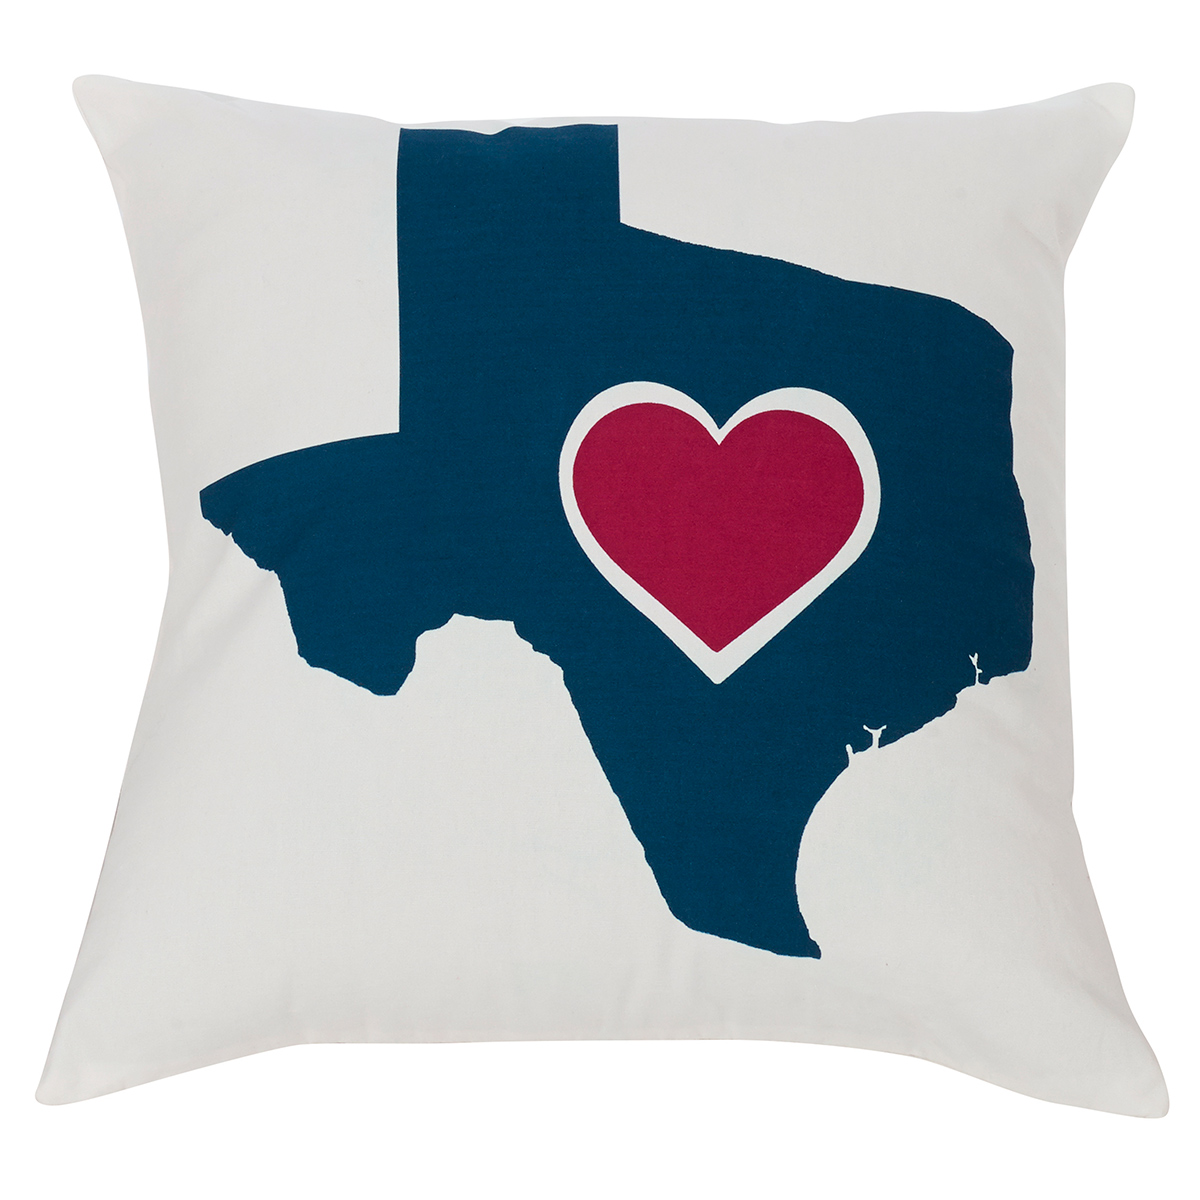 Heart of Texas Accent Pillow